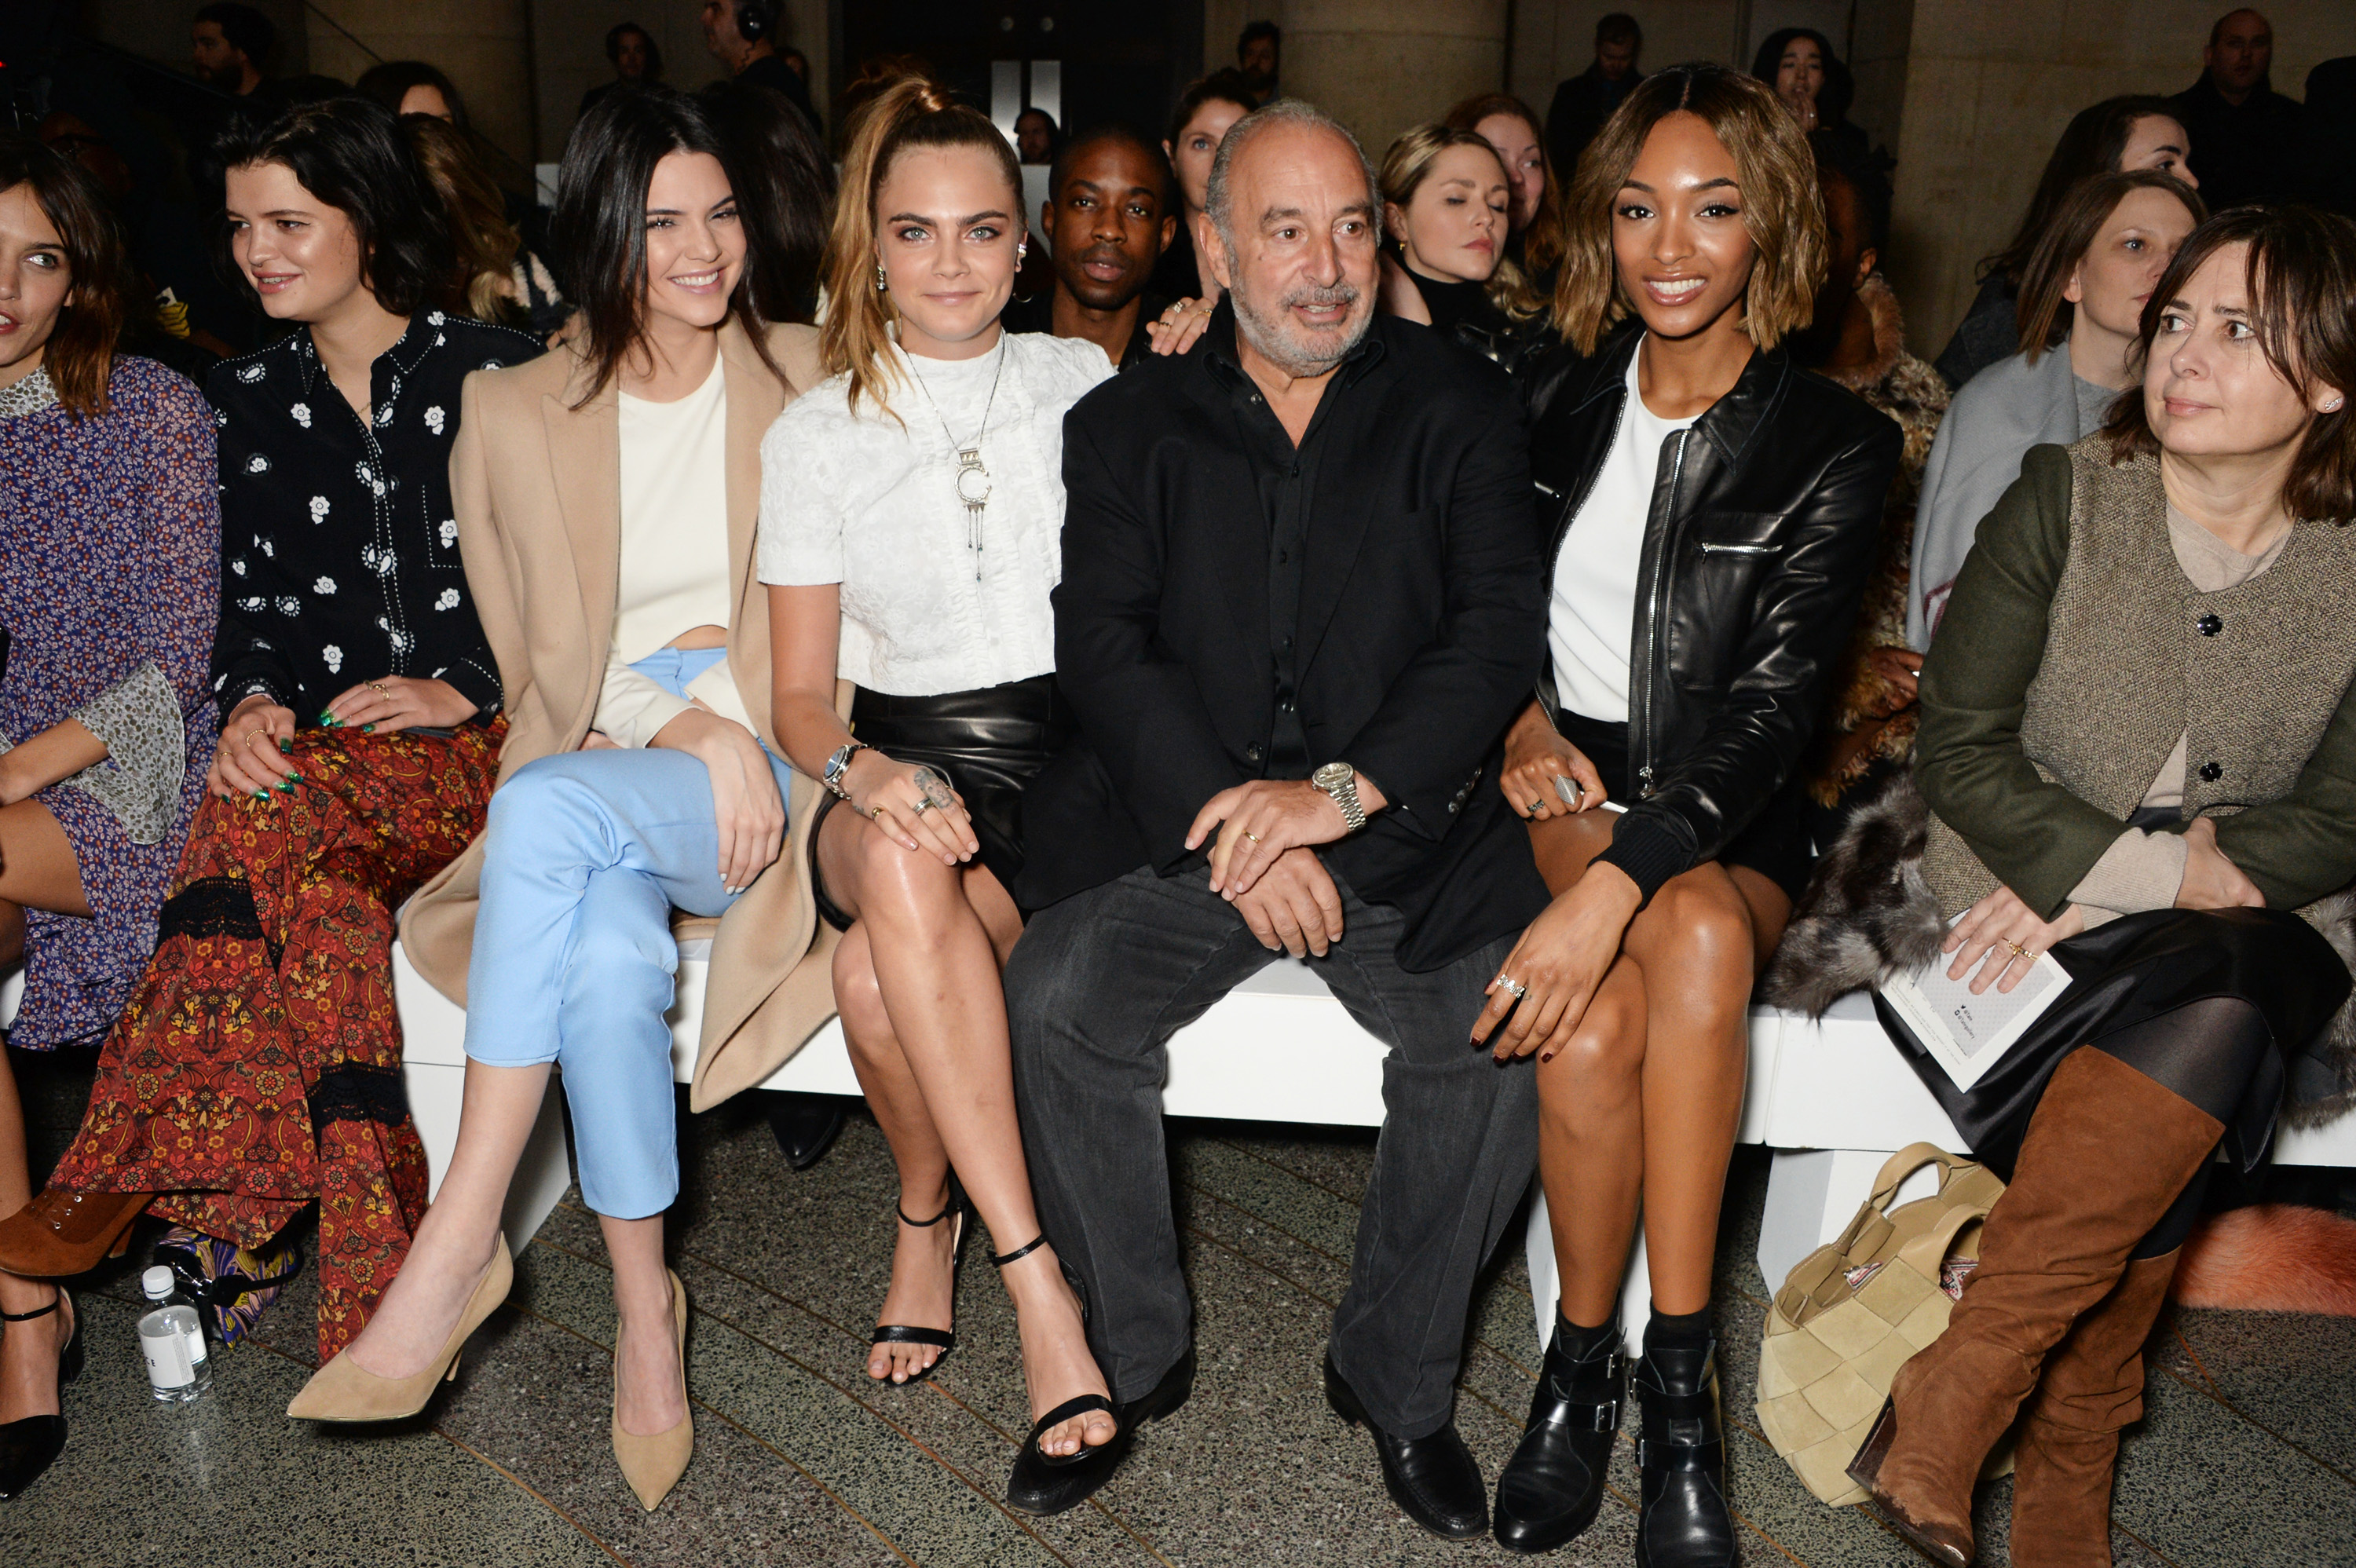 Sir Philip Green was pictured during the Topshop London Fashion Week 2015 show with Kendall Jenner and Cara Delevingne